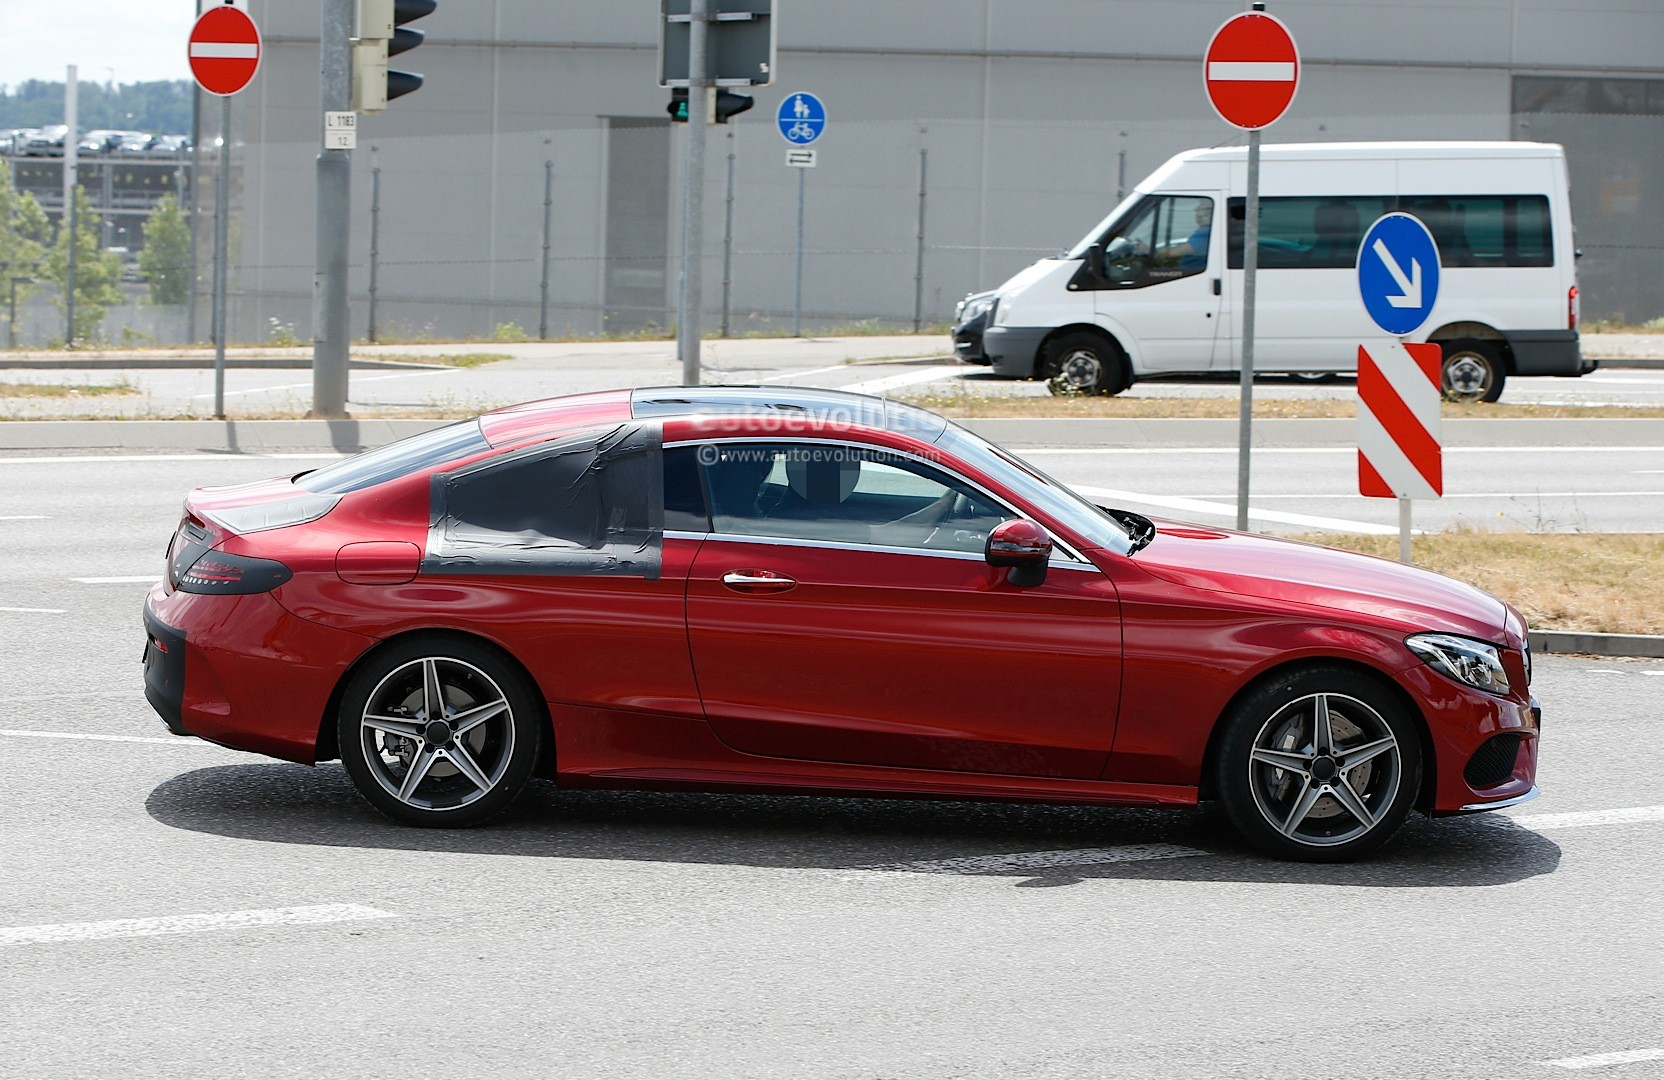 spyshots 2016 mercedes c class coupe almost undisguised in red paint signals debut autoevolution. Black Bedroom Furniture Sets. Home Design Ideas